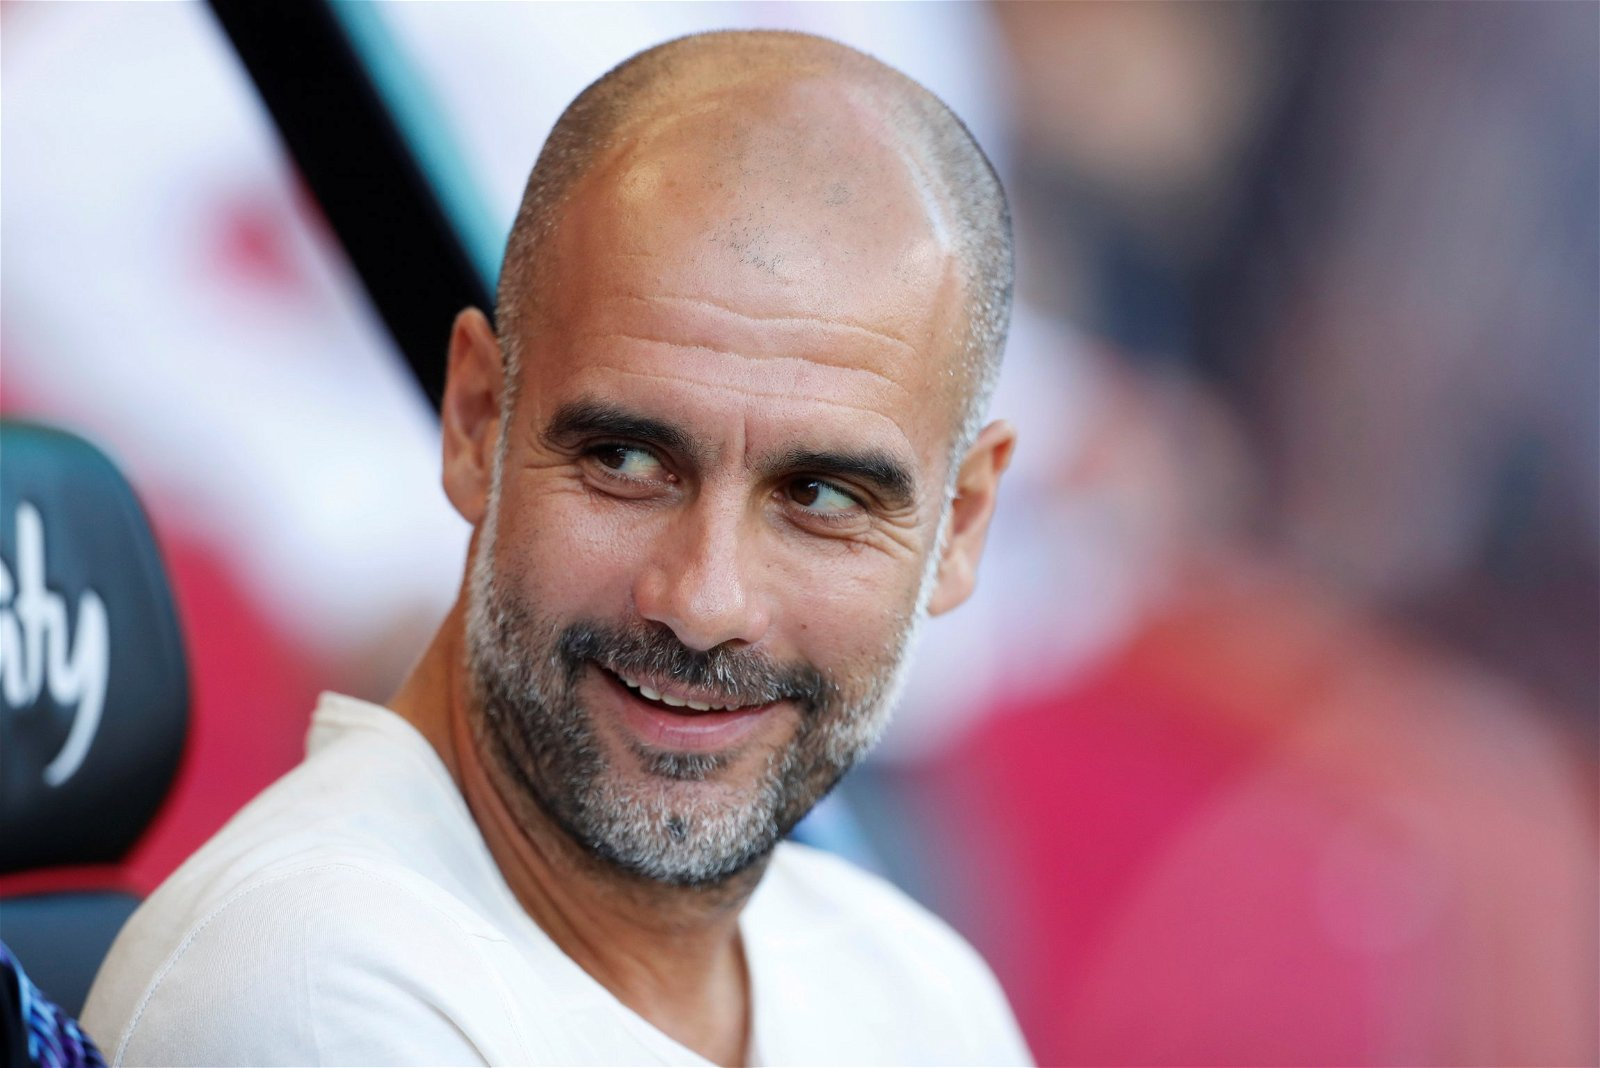 Pep Guardiola smiling before match against Bournemouth